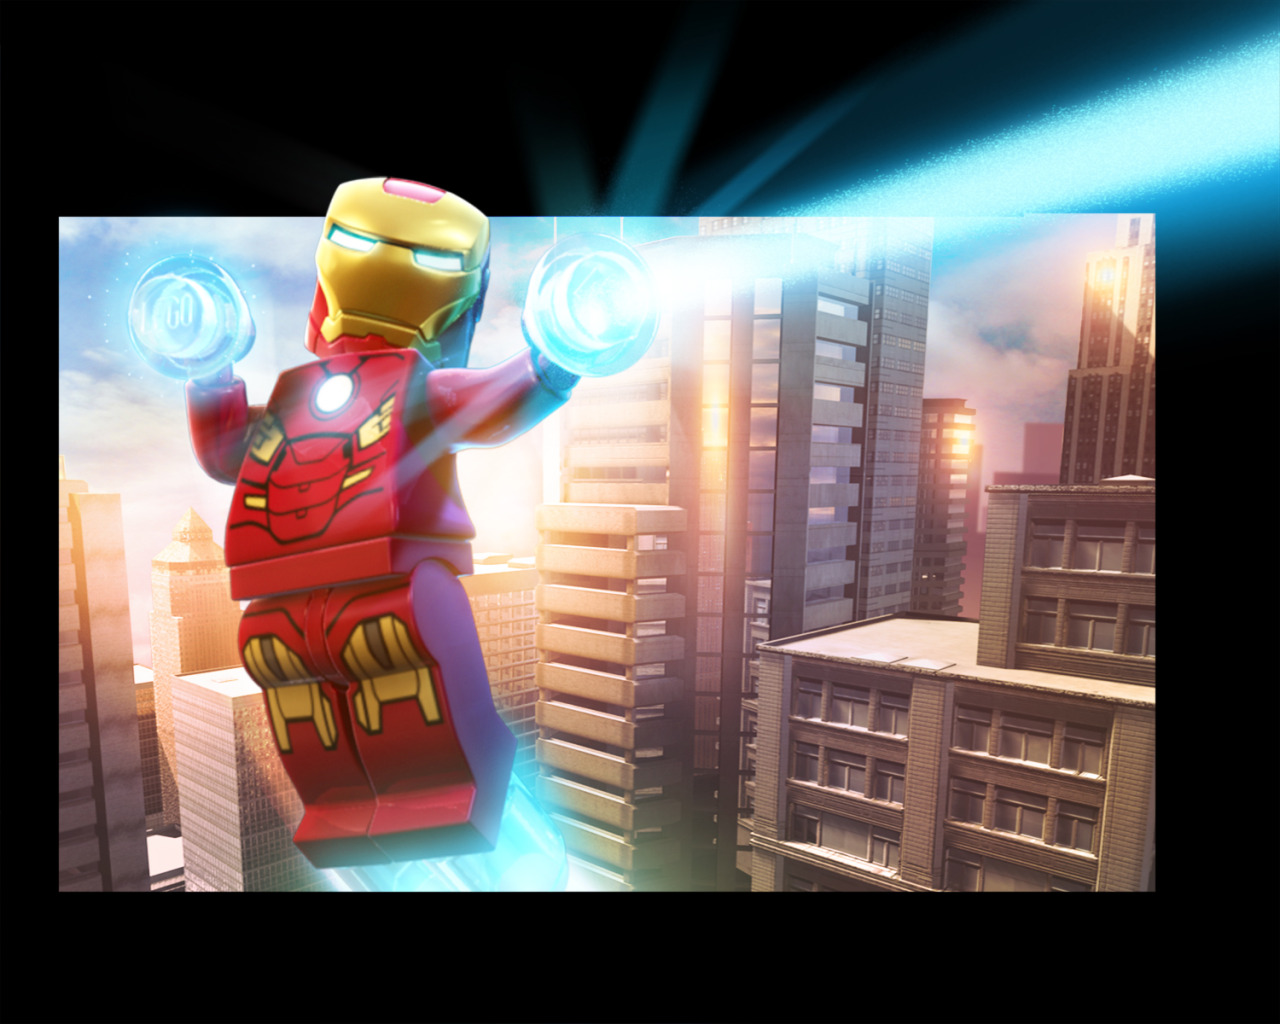 LEGO Marvel Super Heroes – character renders and concept artwork.